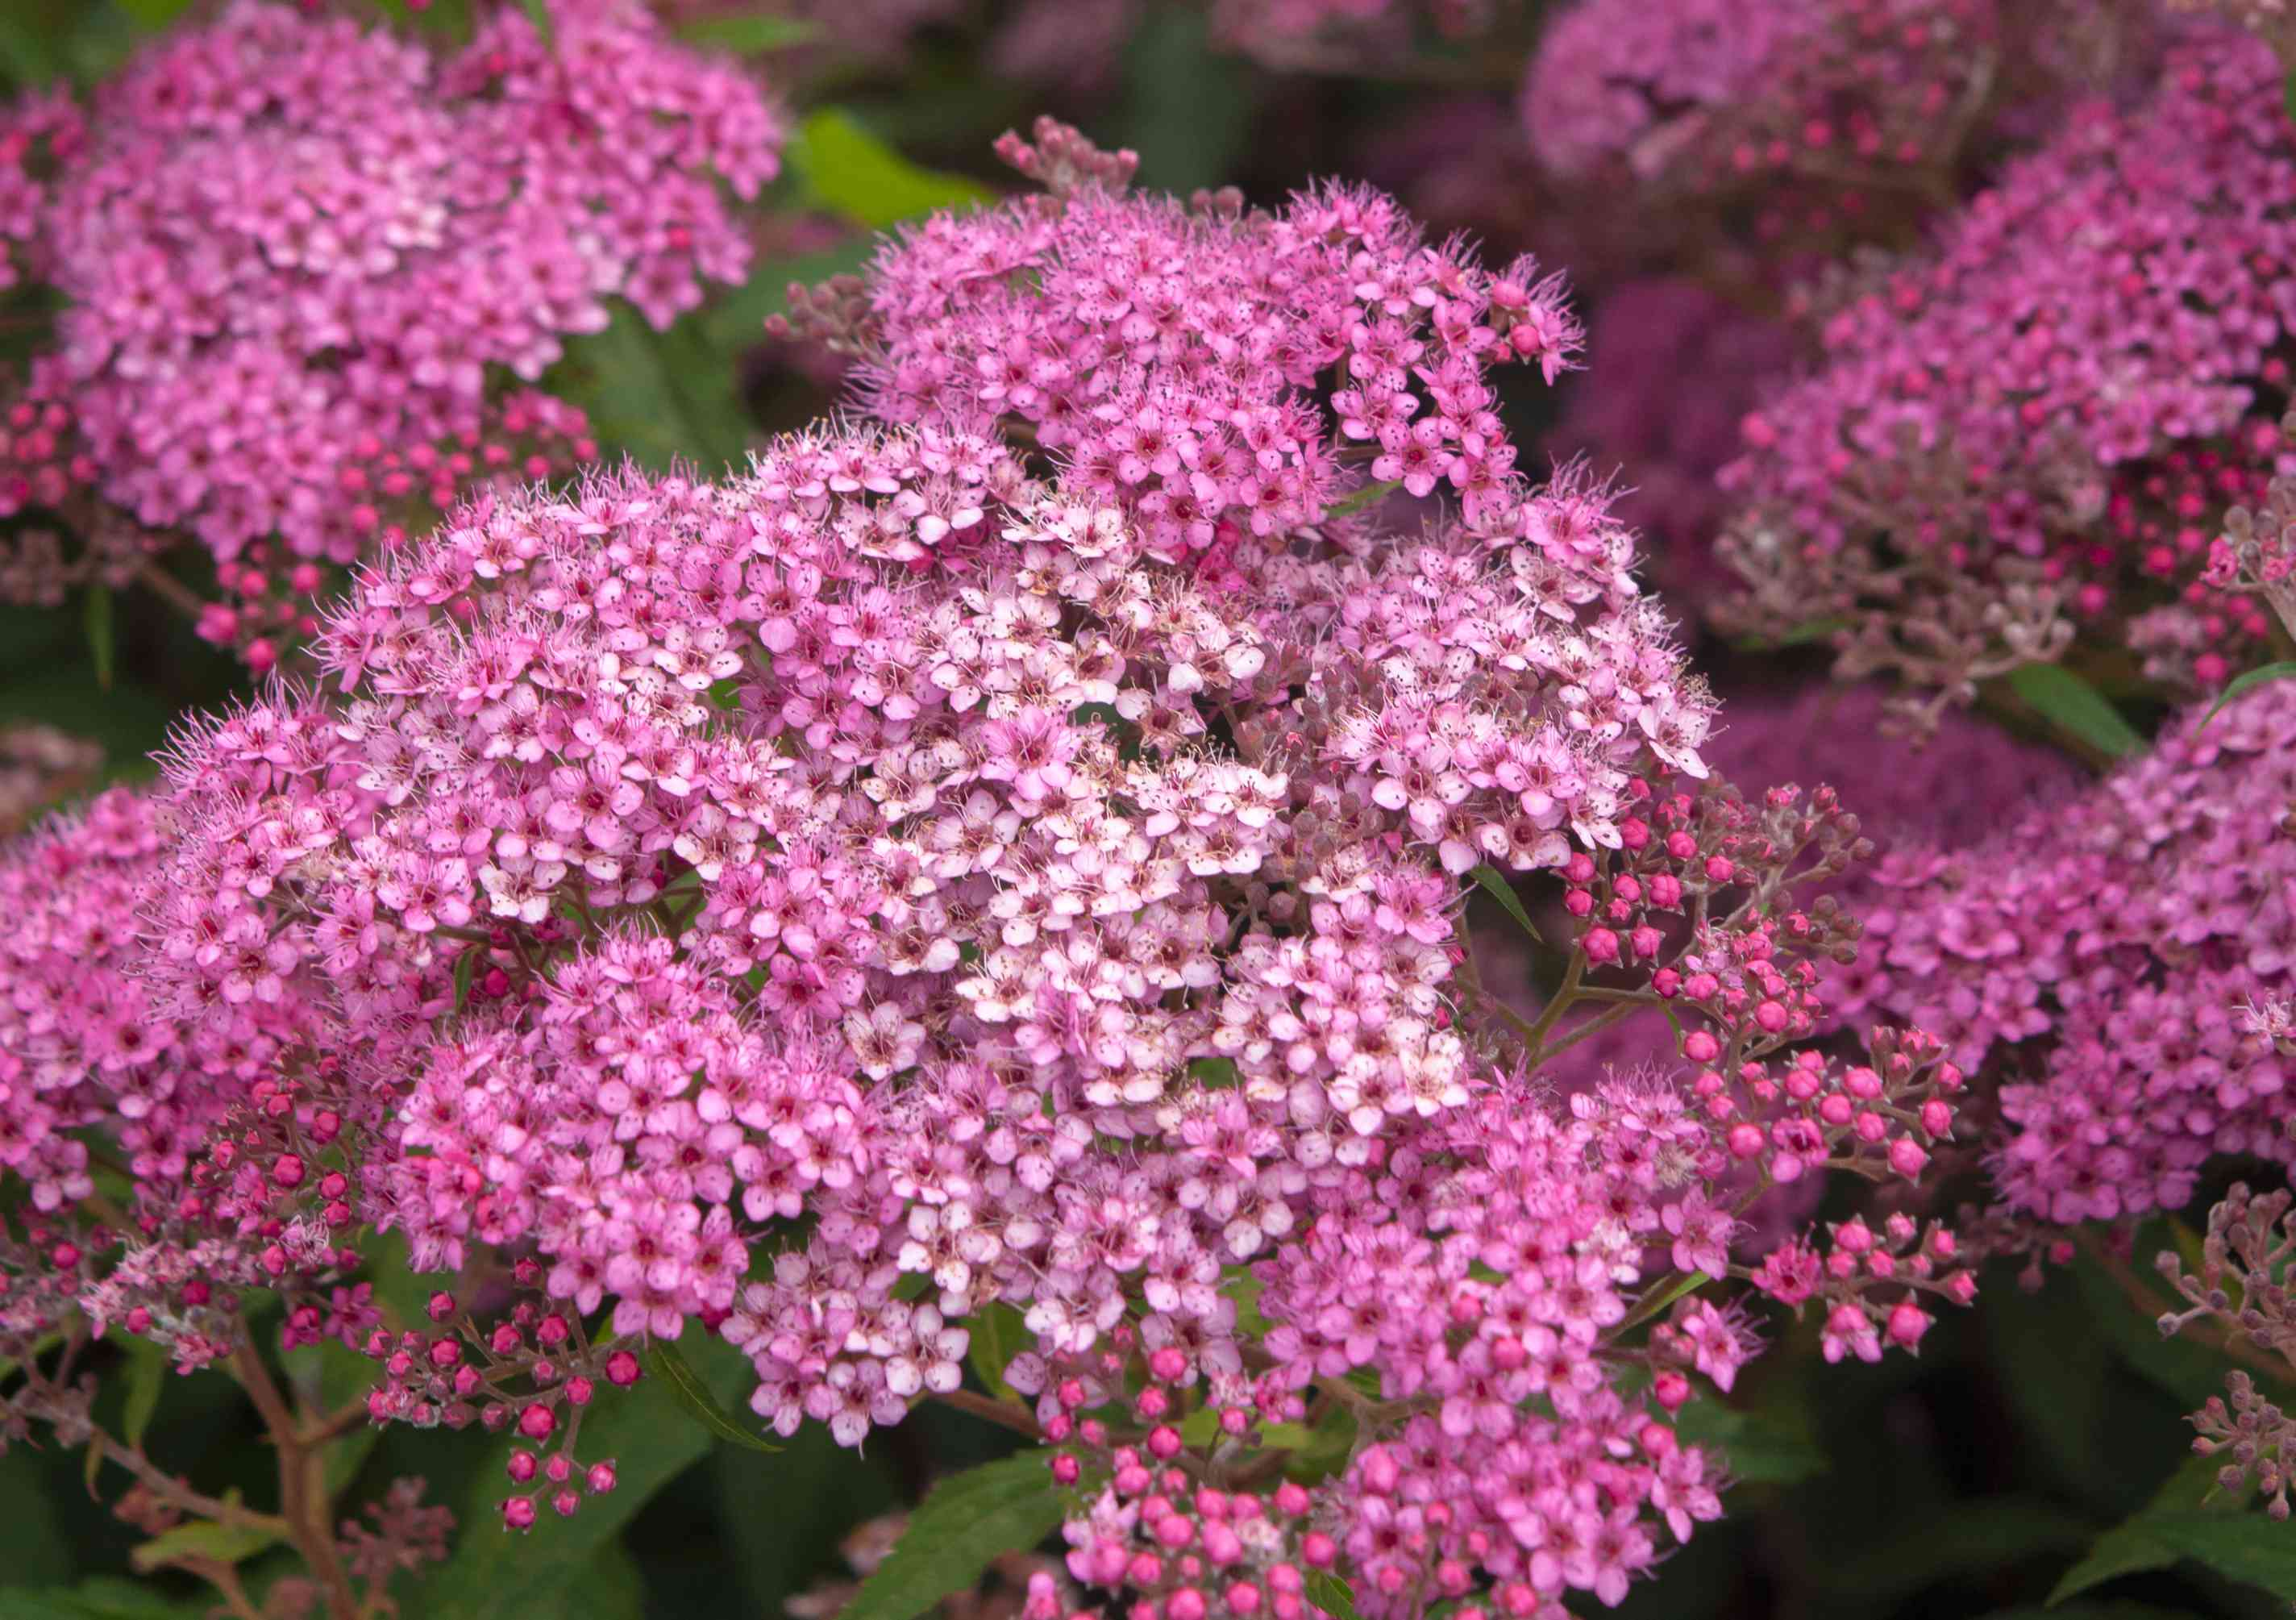 Neon flash spirea shrub with deep and light pink flower clusters and buds